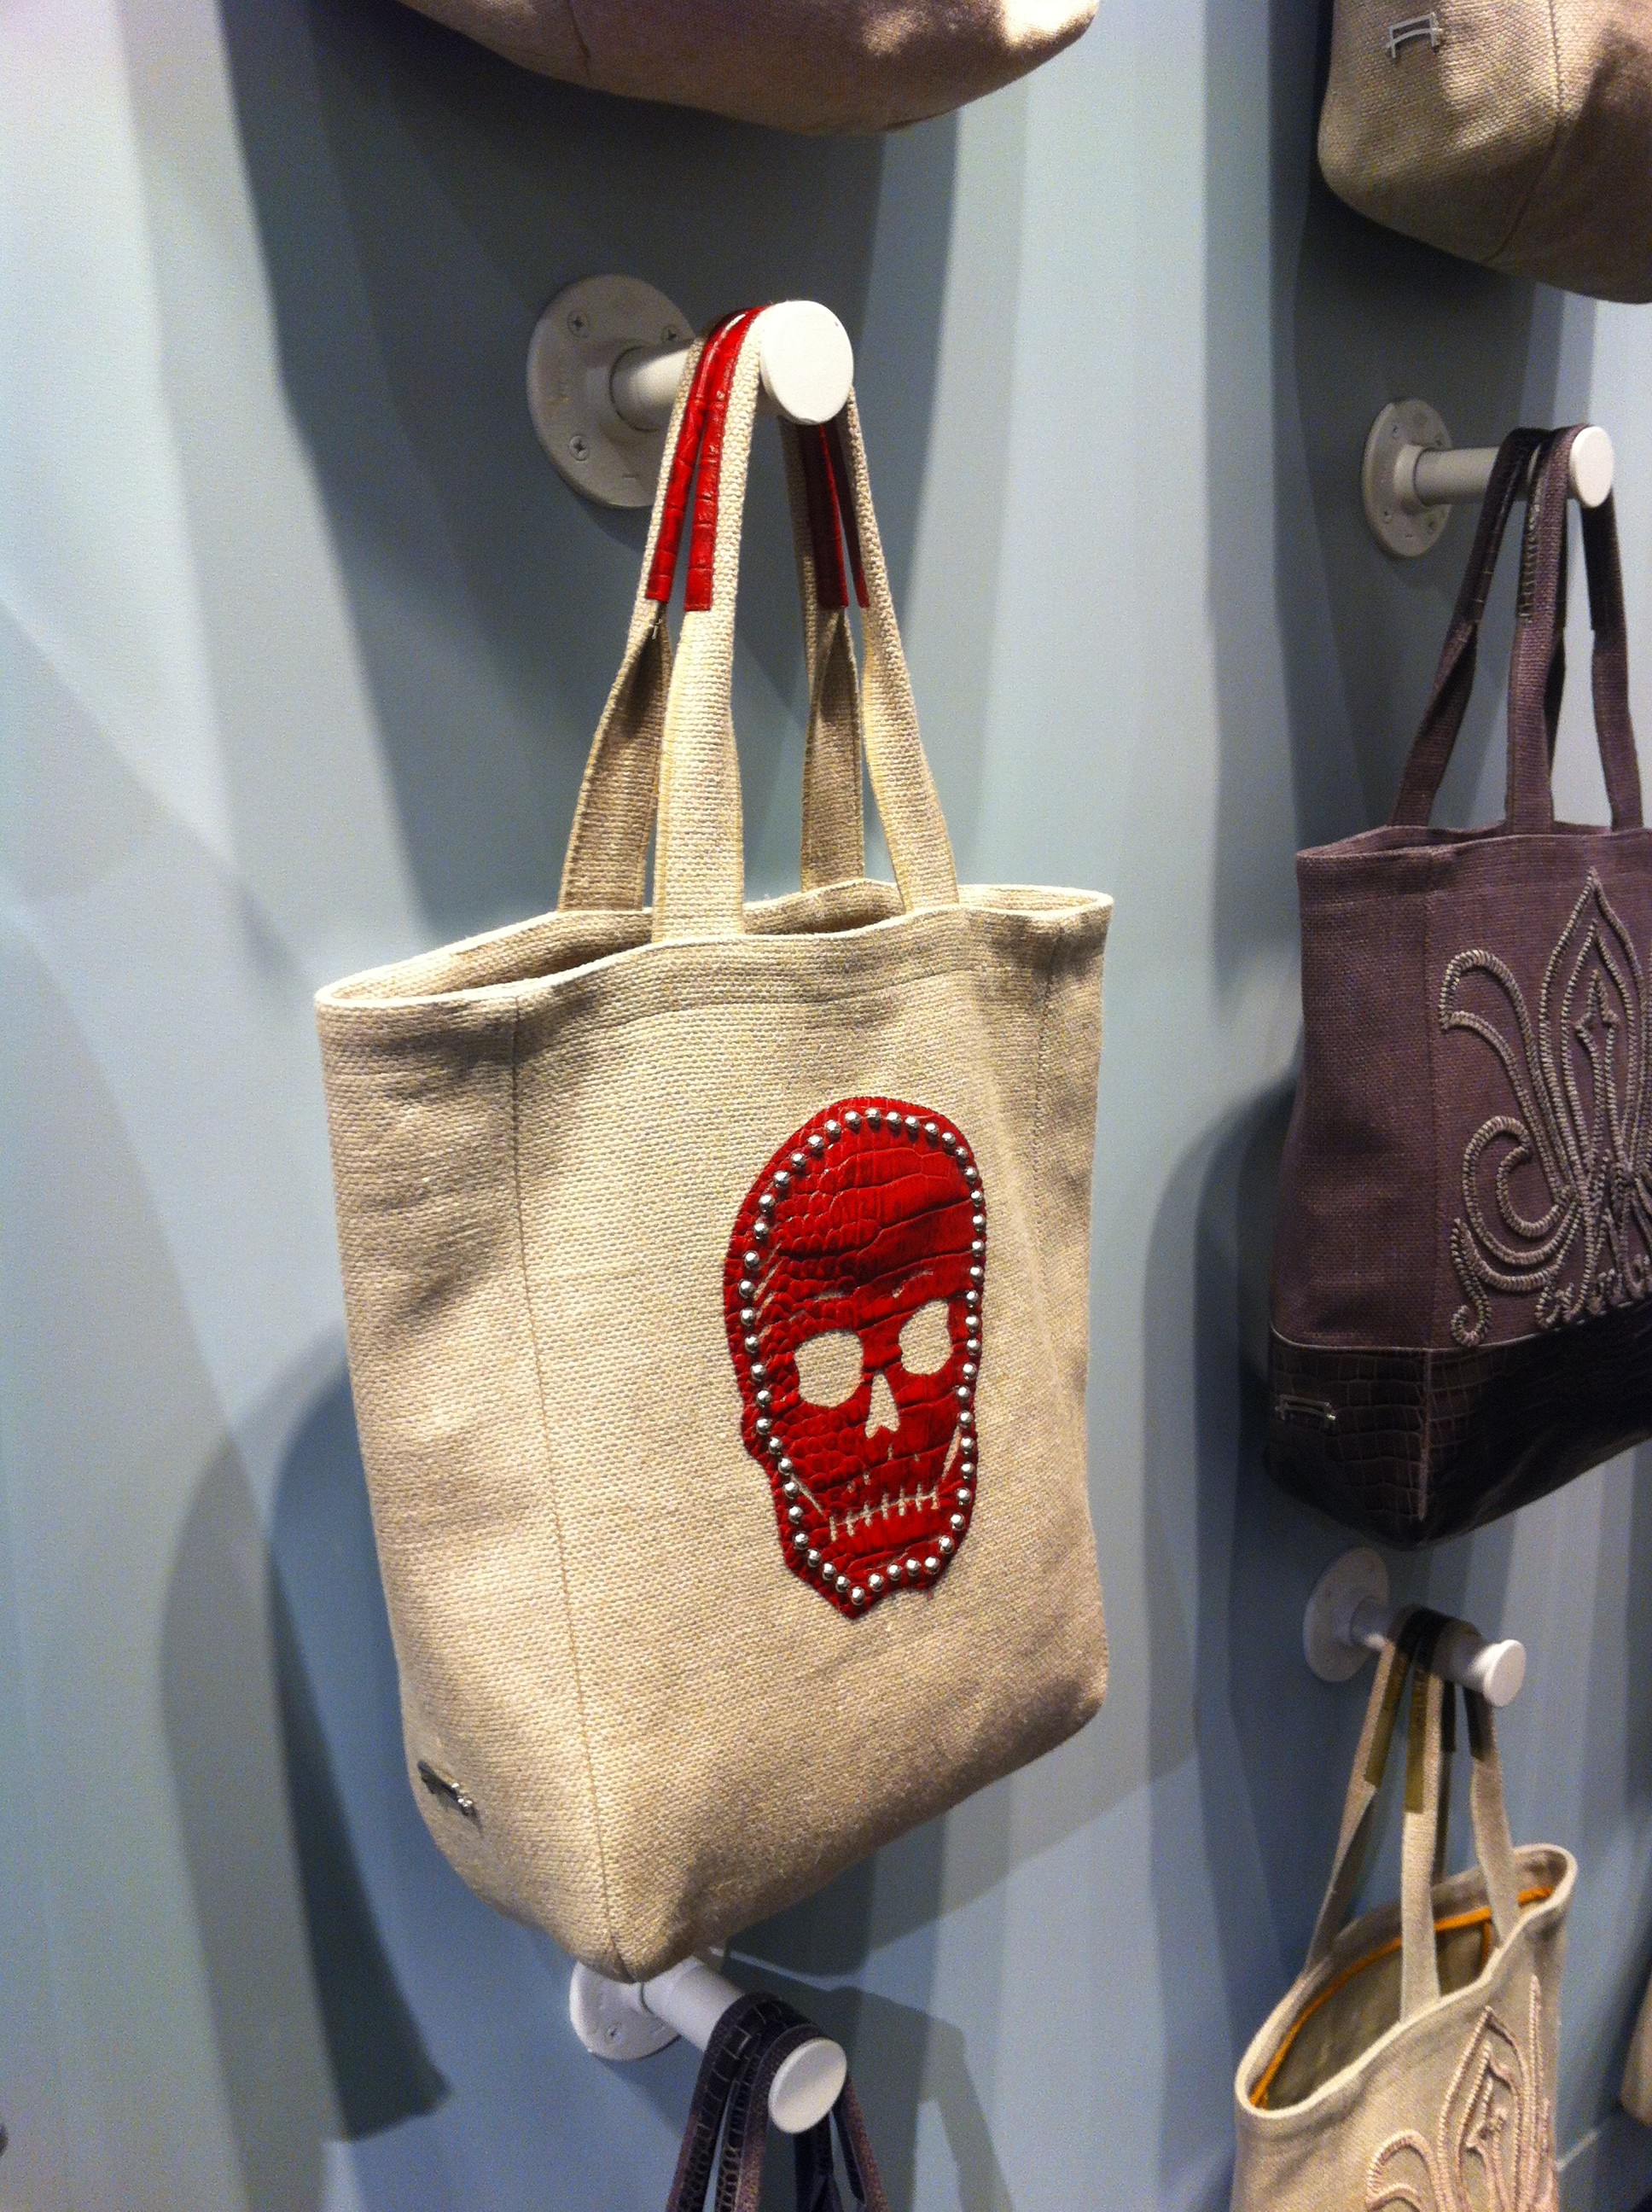 A tight shot of an Ankasa canvas tote bag with red skull